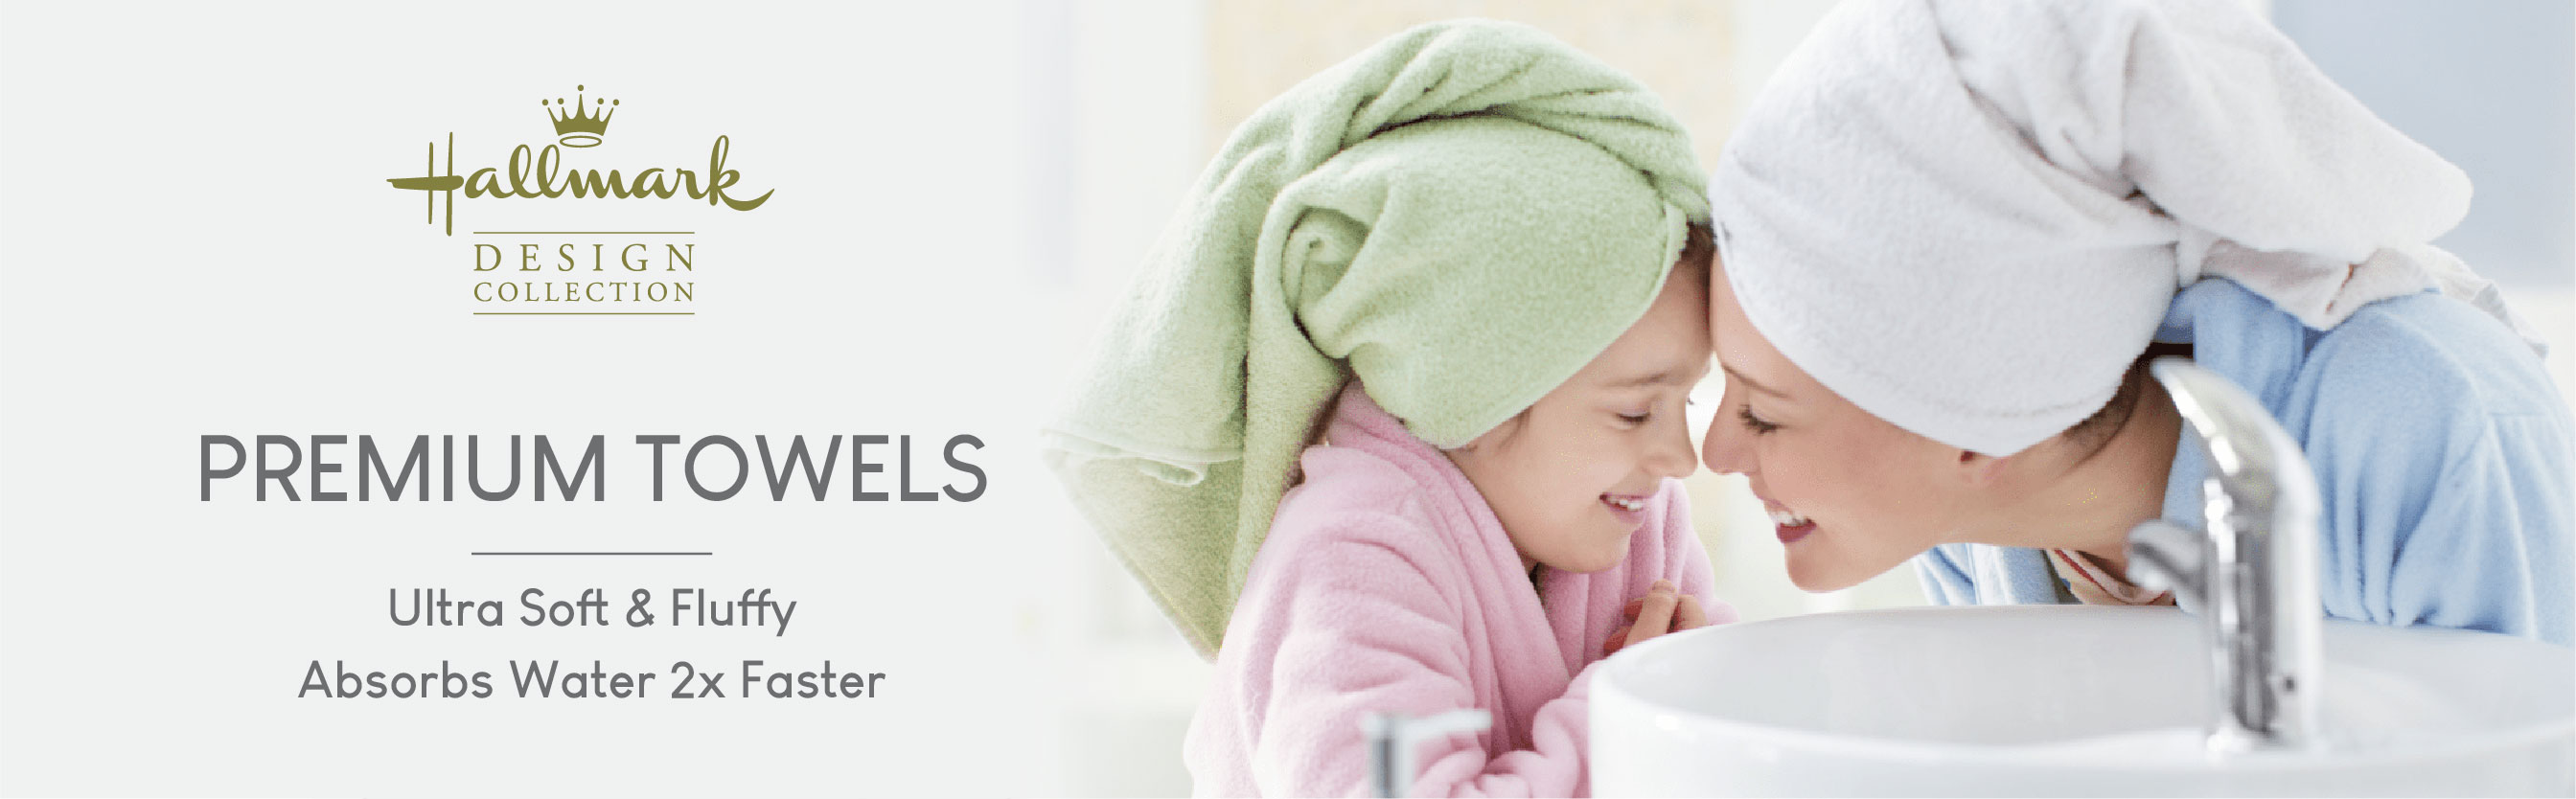 Hallmark Towels are soft, fluffy and 2x more water absorbent